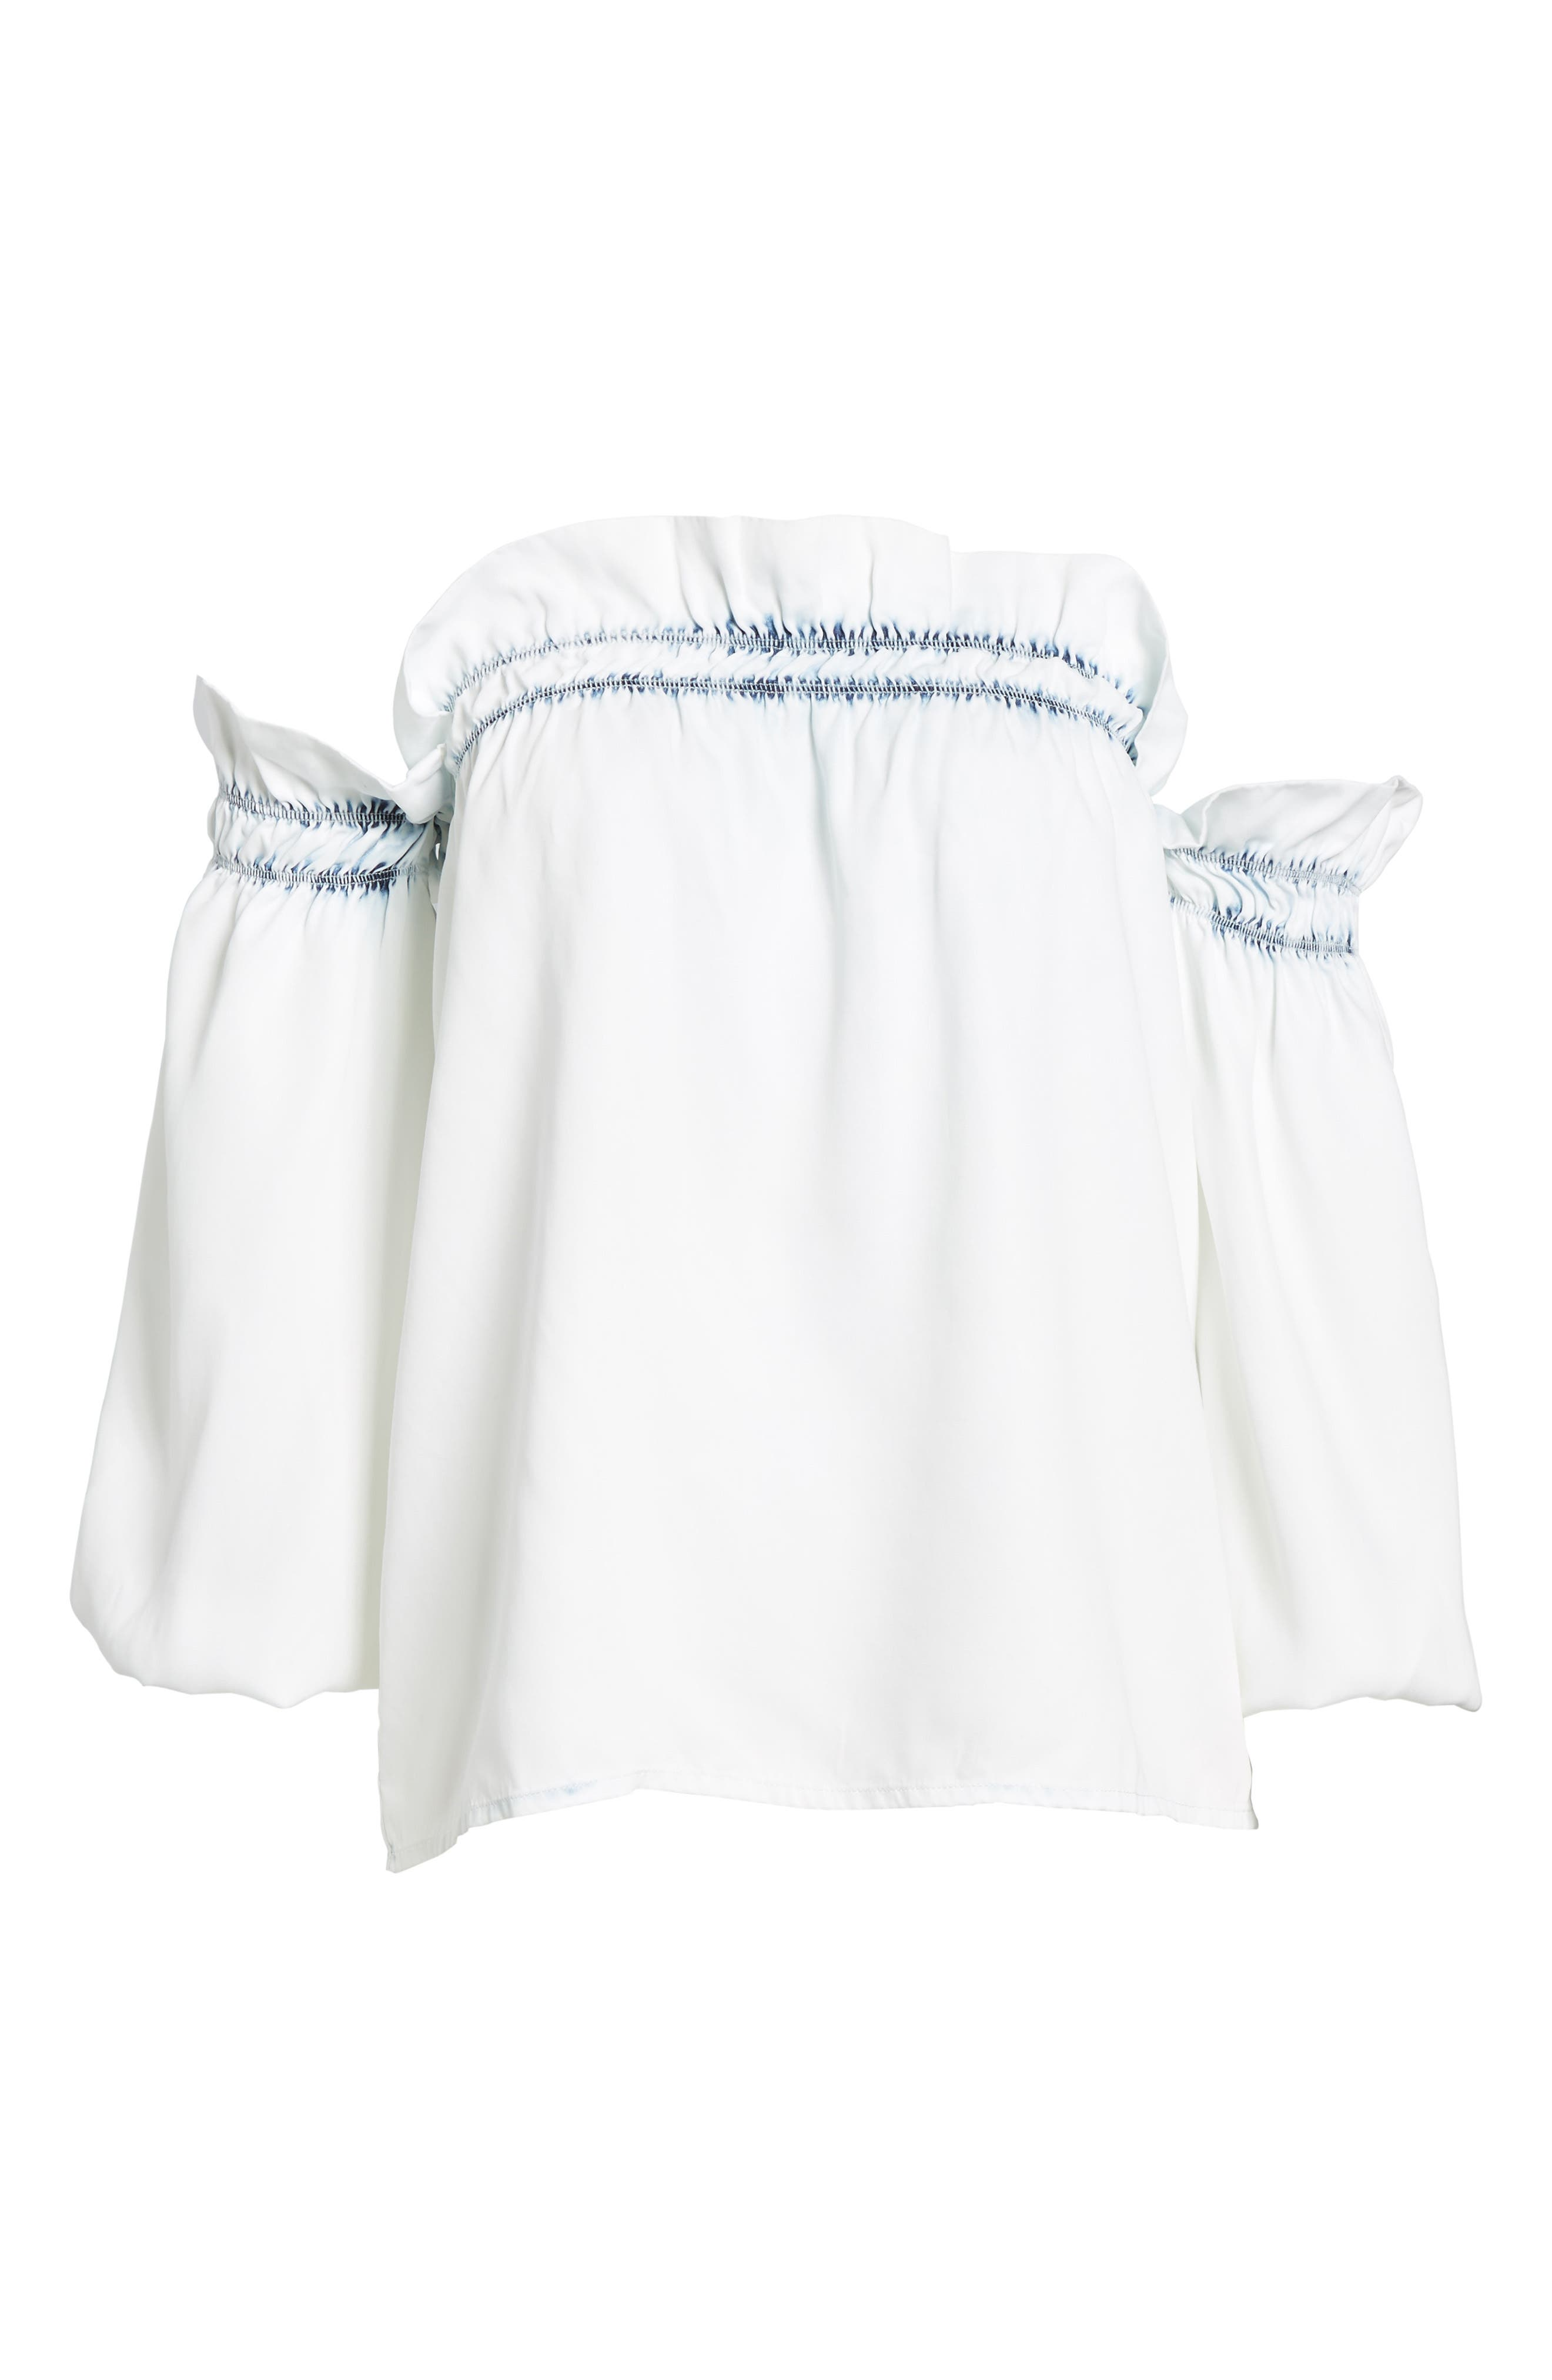 Little W 12th Off the Shoulder Top,                             Alternate thumbnail 6, color,                             Irregular Bleach